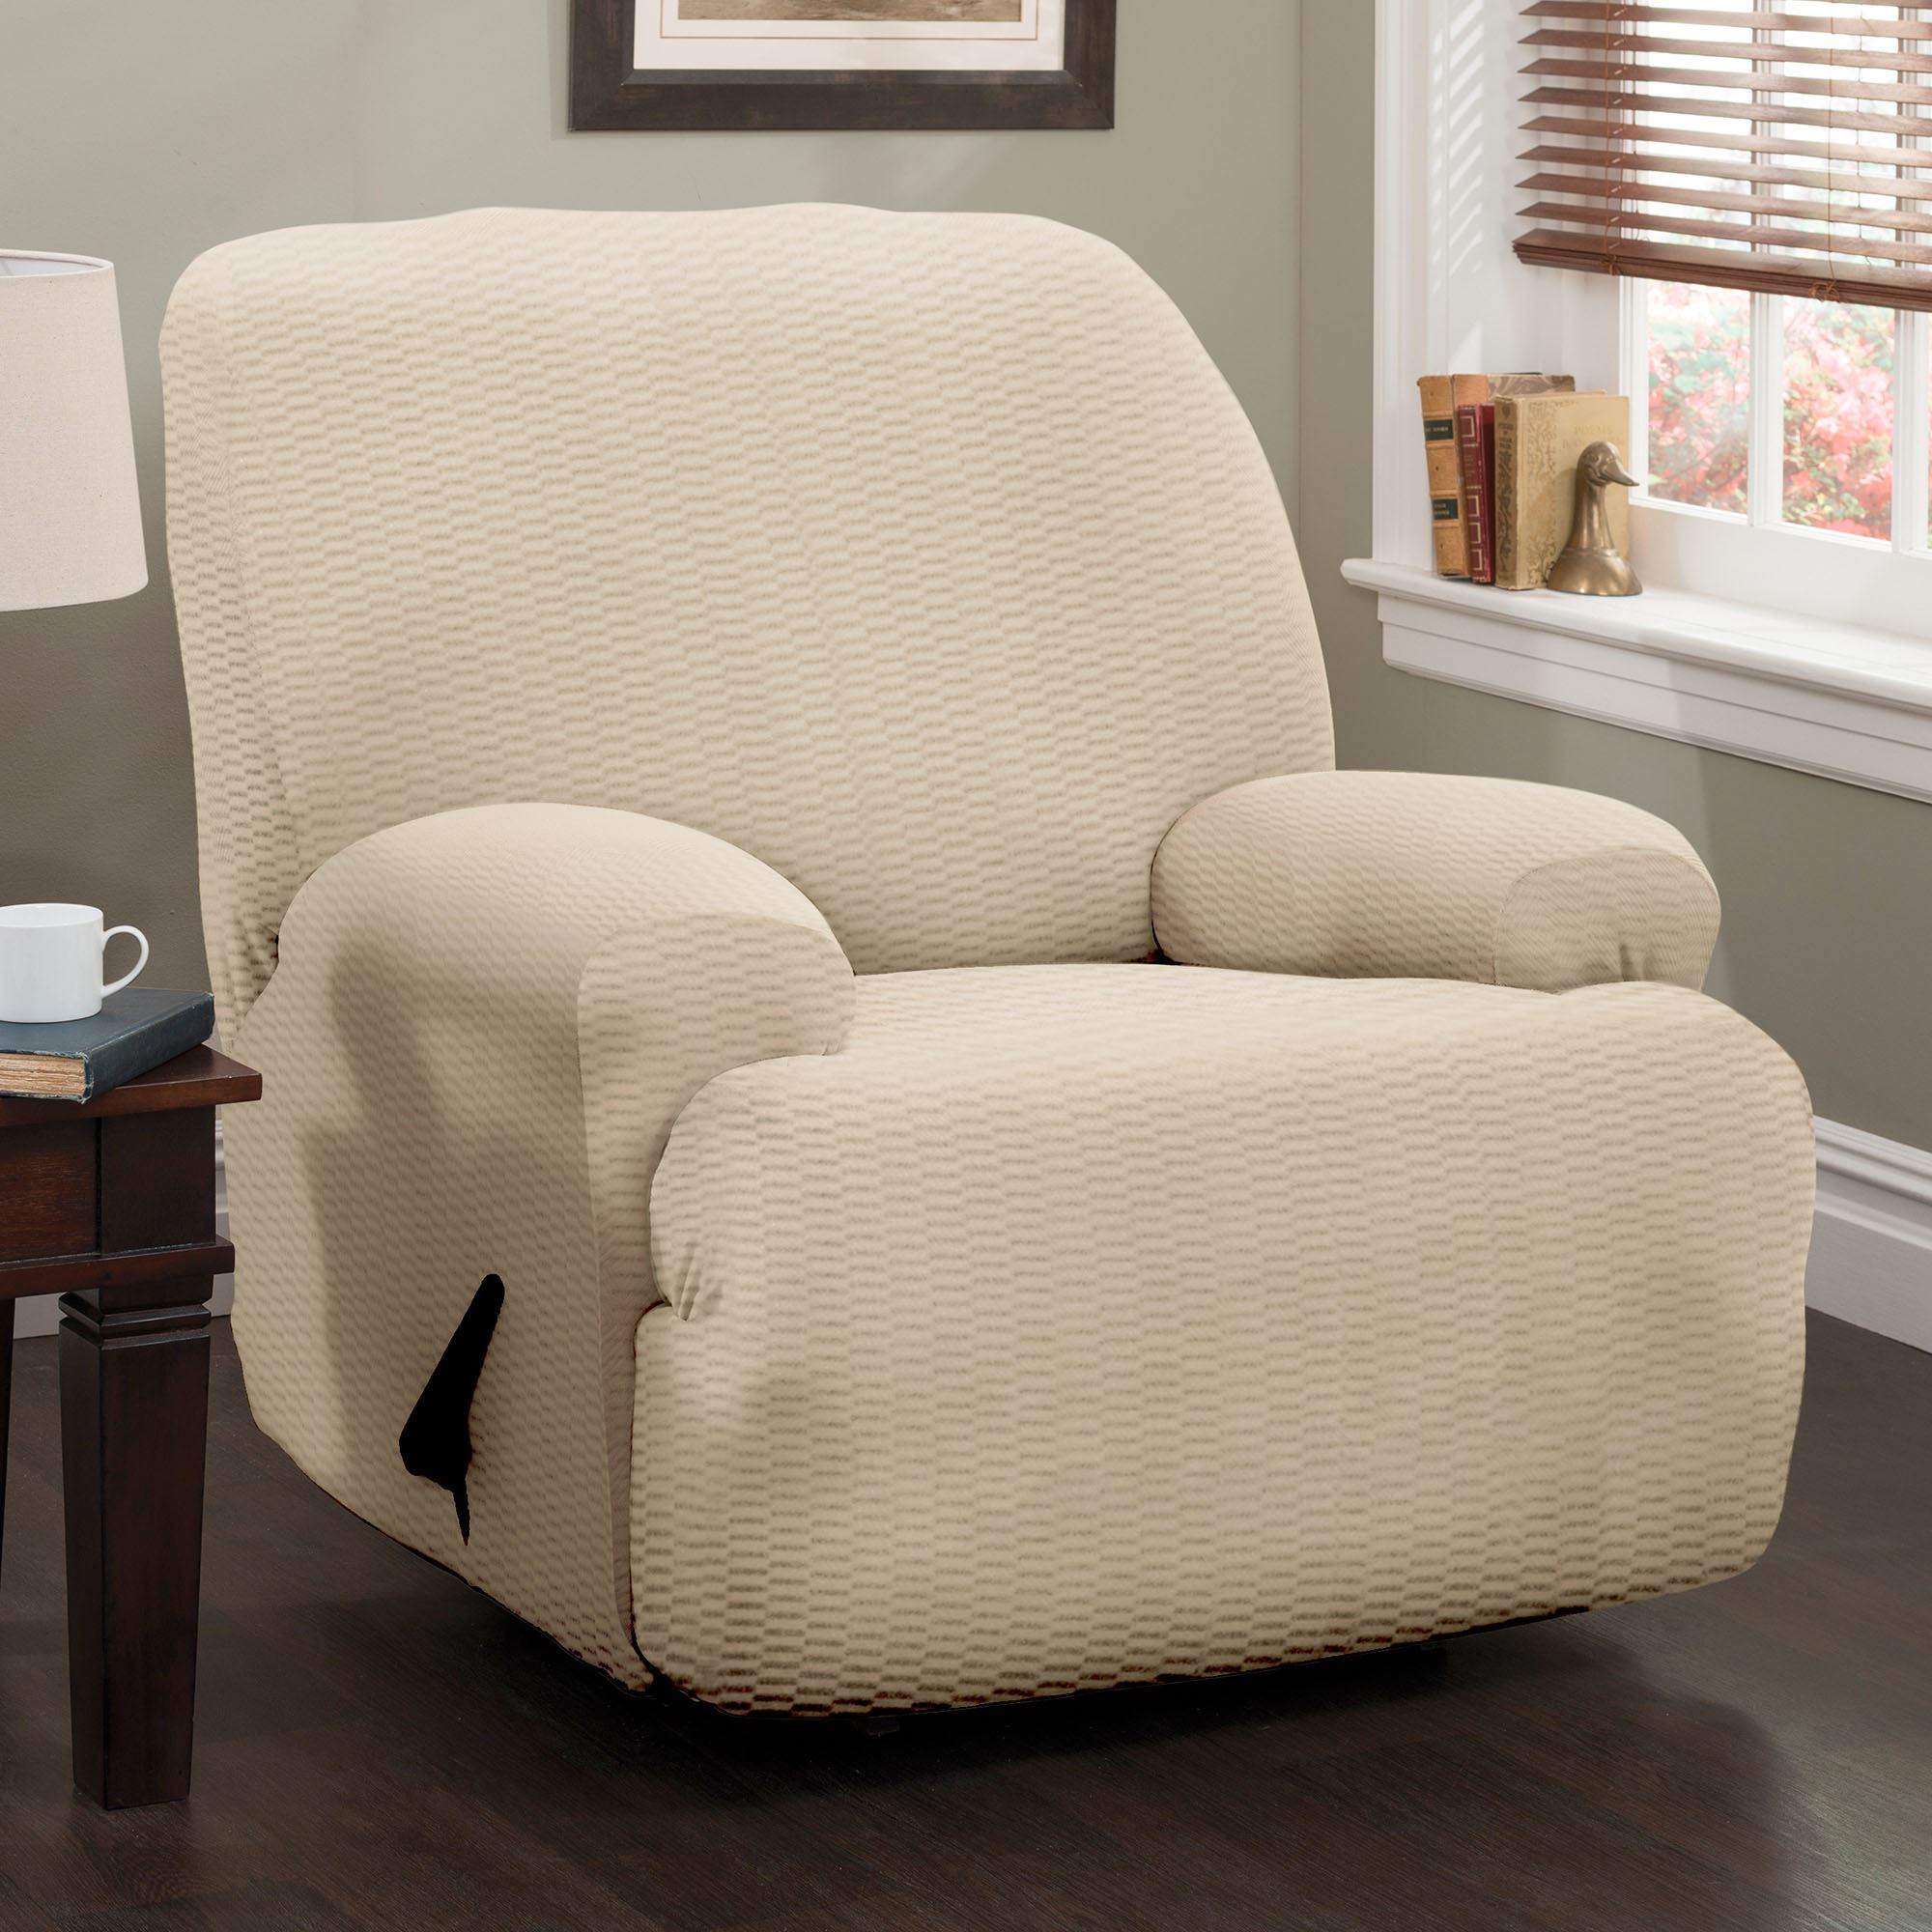 design under recliner a cool slipcover home popular wonderful chair for room slipcovers